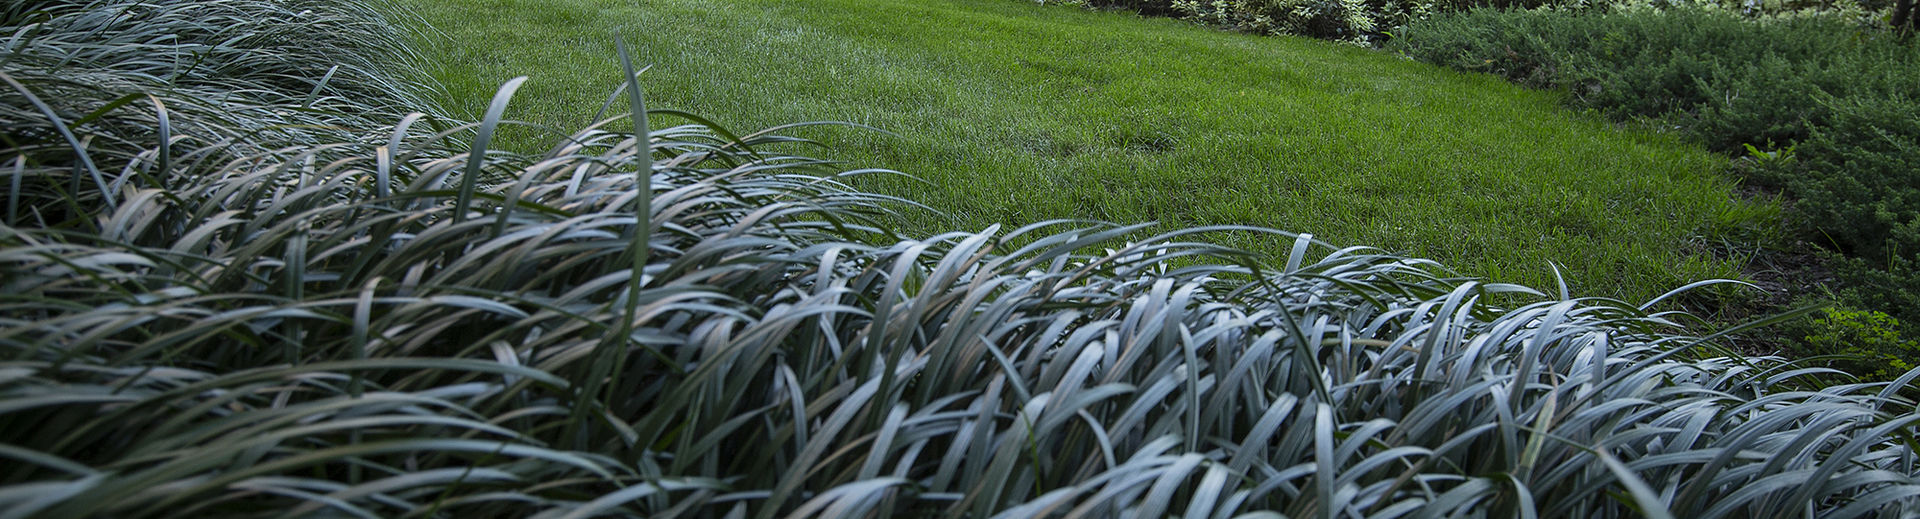 Blades of grass on a lawn